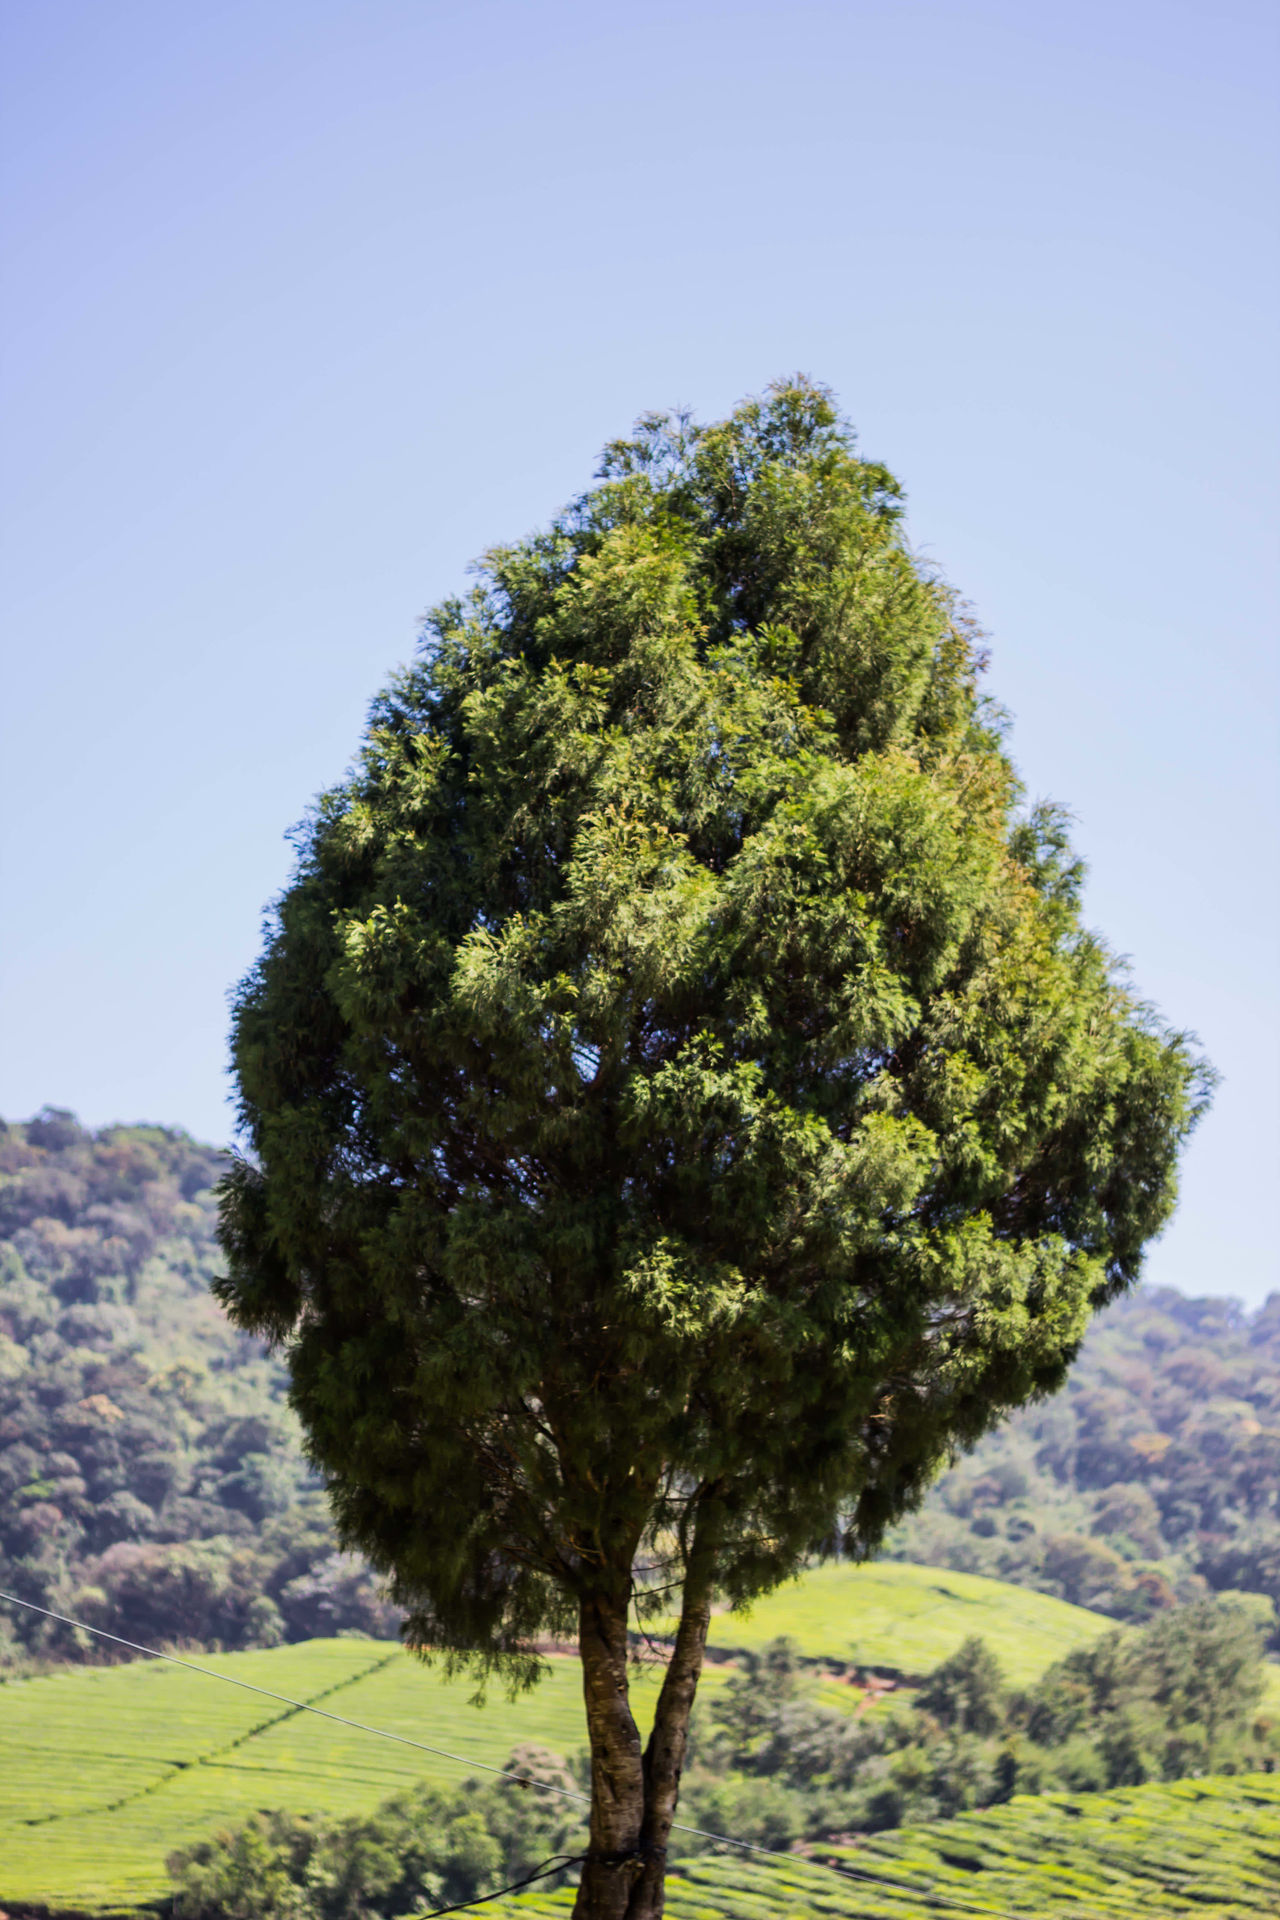 Tree Growth Nature Clear Sky No People Casualphotography Beauty In Nature Tranquility Outdoors Day Sky Megamalai